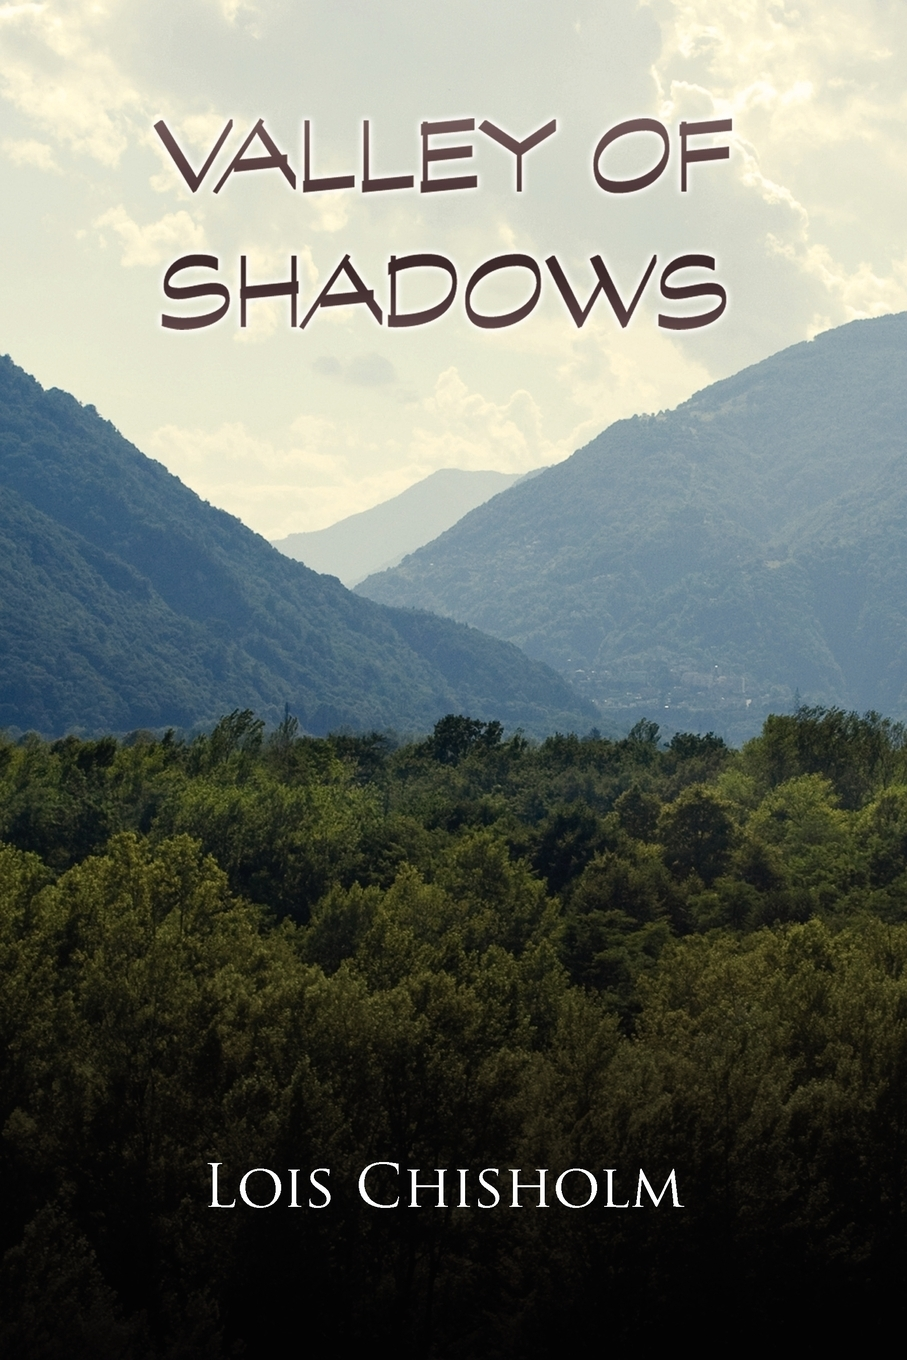 Lois Chisholm. Valley of Shadows